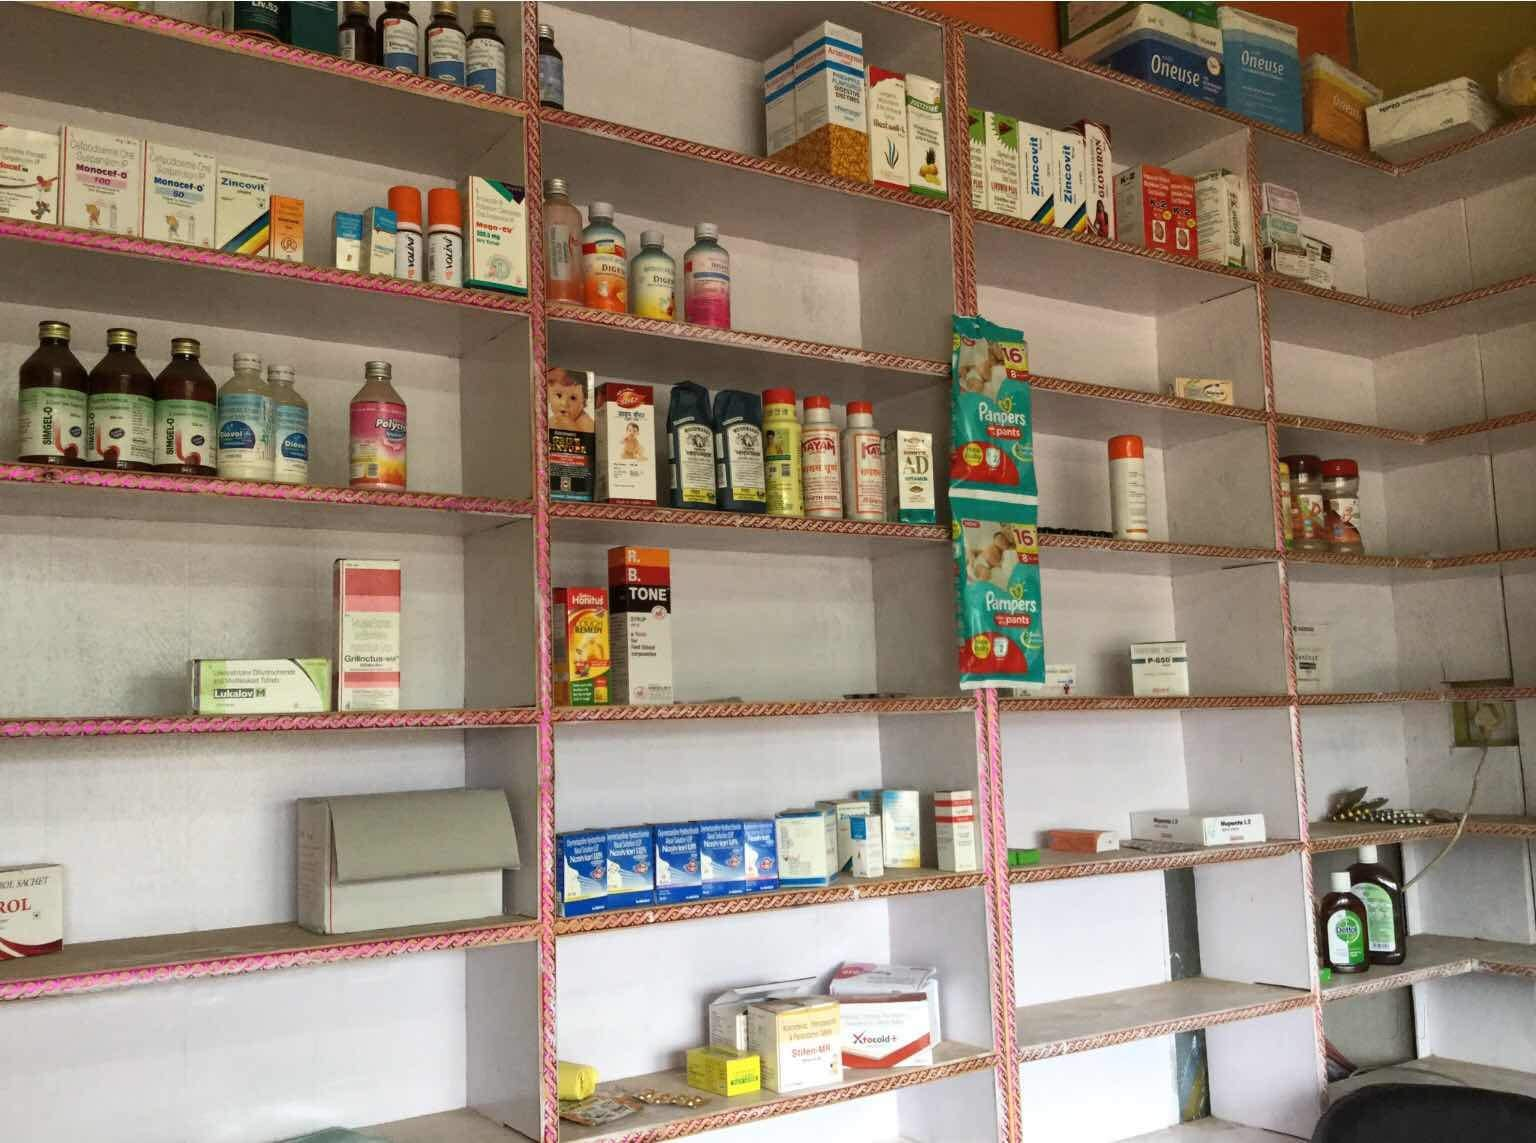 Top Surgical Supply Store in Keonjhar - Best Surgical Equipment